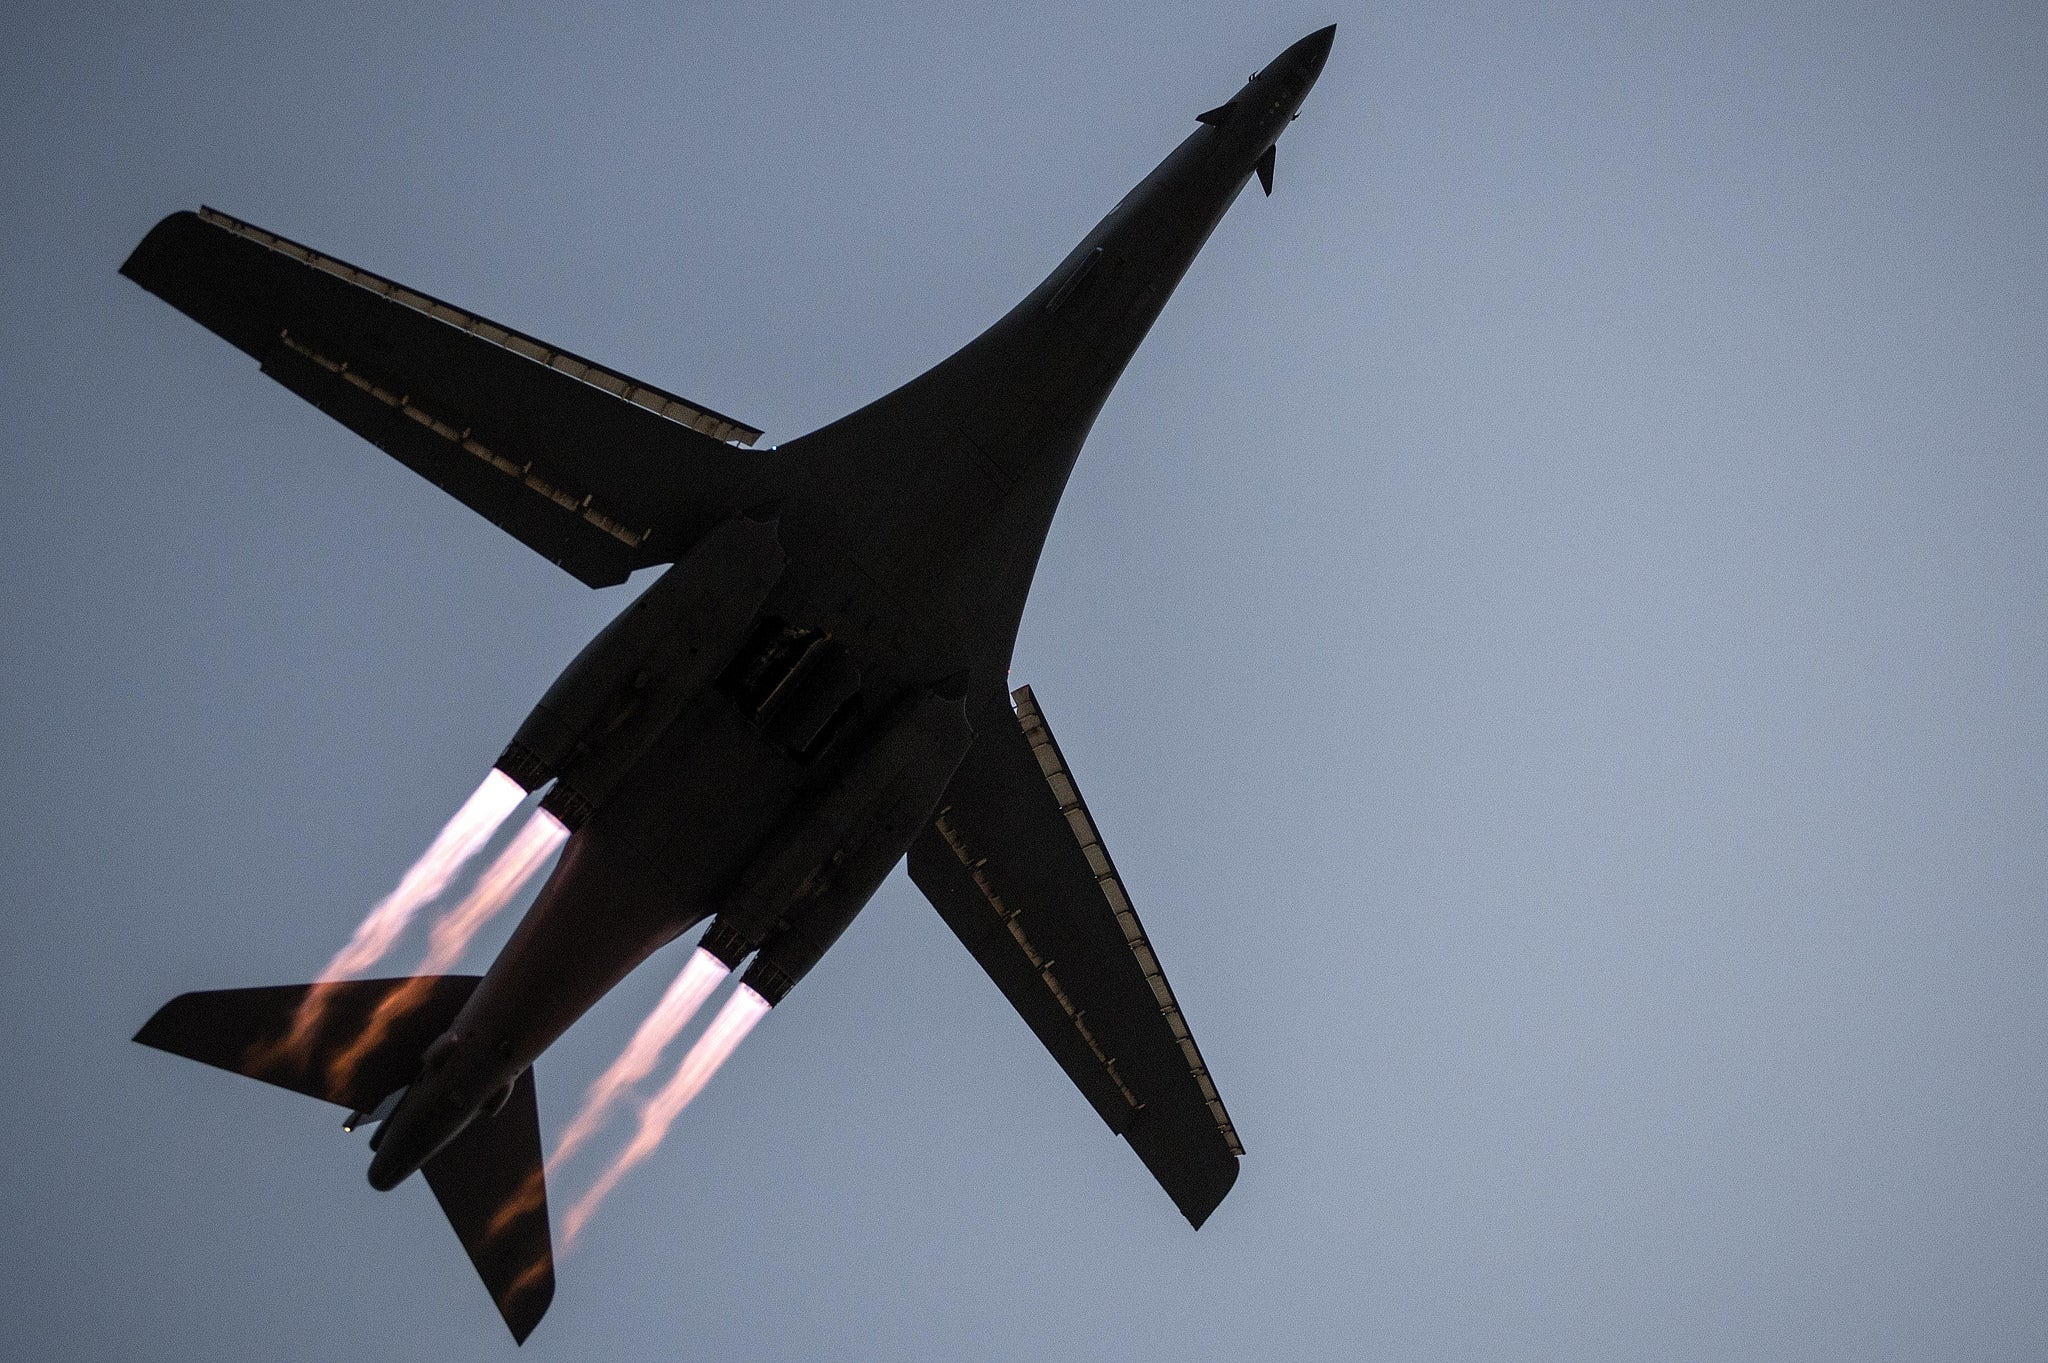 Awesome Underneath Angle Of A B-1B Lancer Taking Off